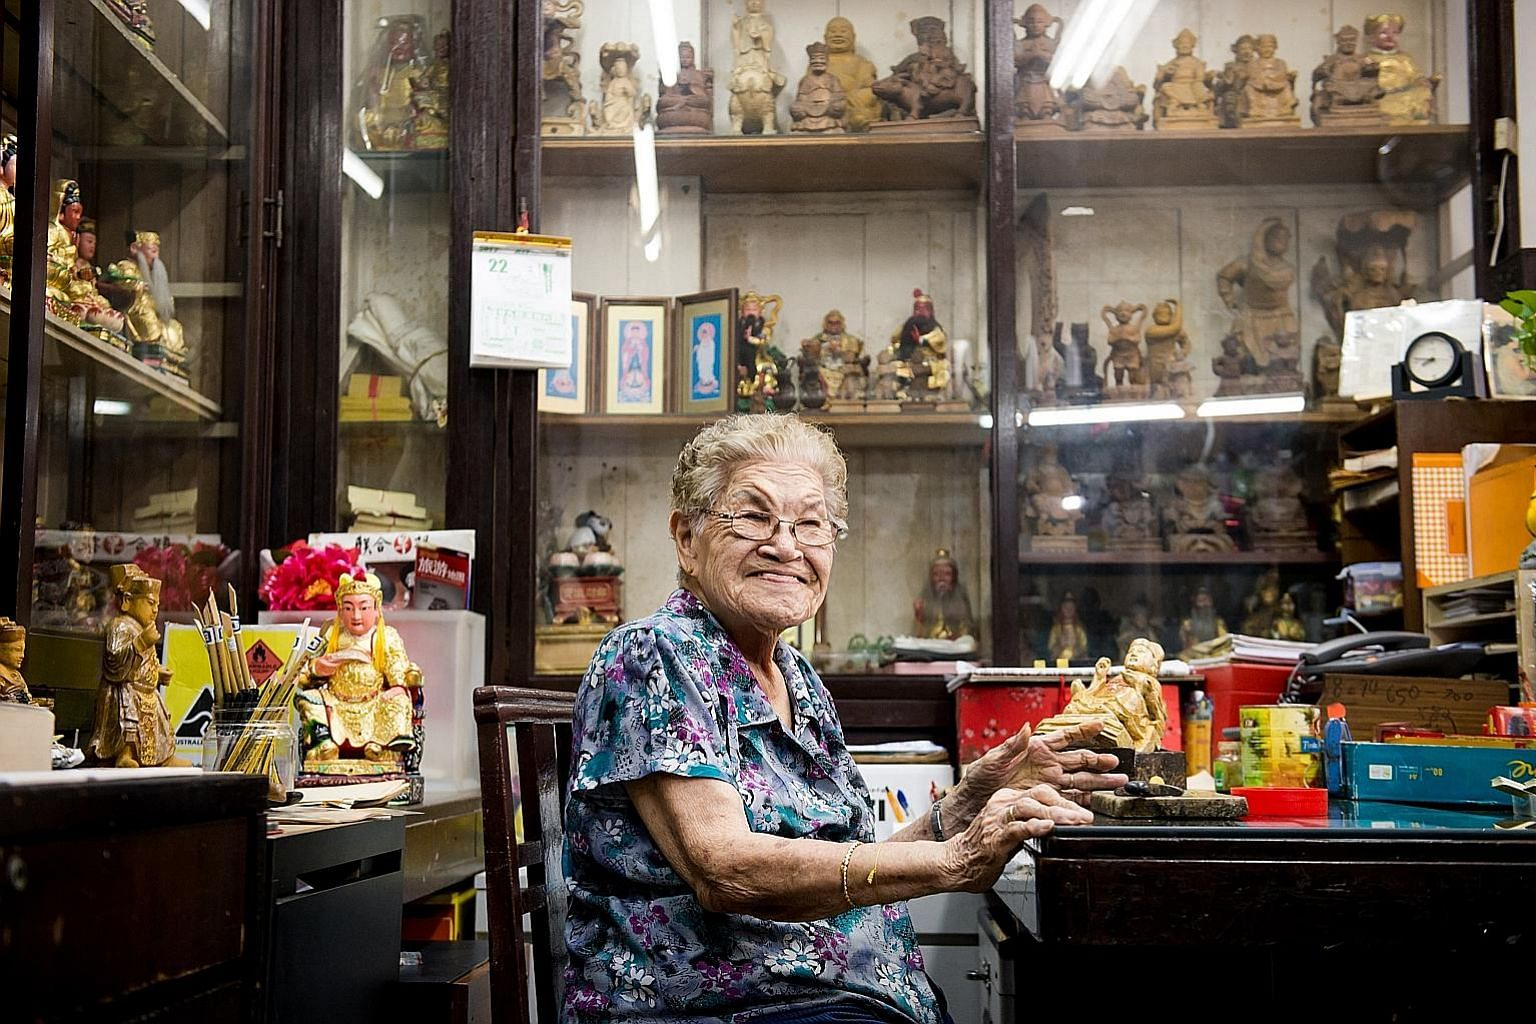 Madam Tan Chwee Lian (above), 89, family matriarch of Say Tian Hng Buddha Shop, carving wooden statues. The 124-year-old Taoist effigymaking shop is organising Design for Deities, an international competition calling for designers to reimagine a 40-year-o